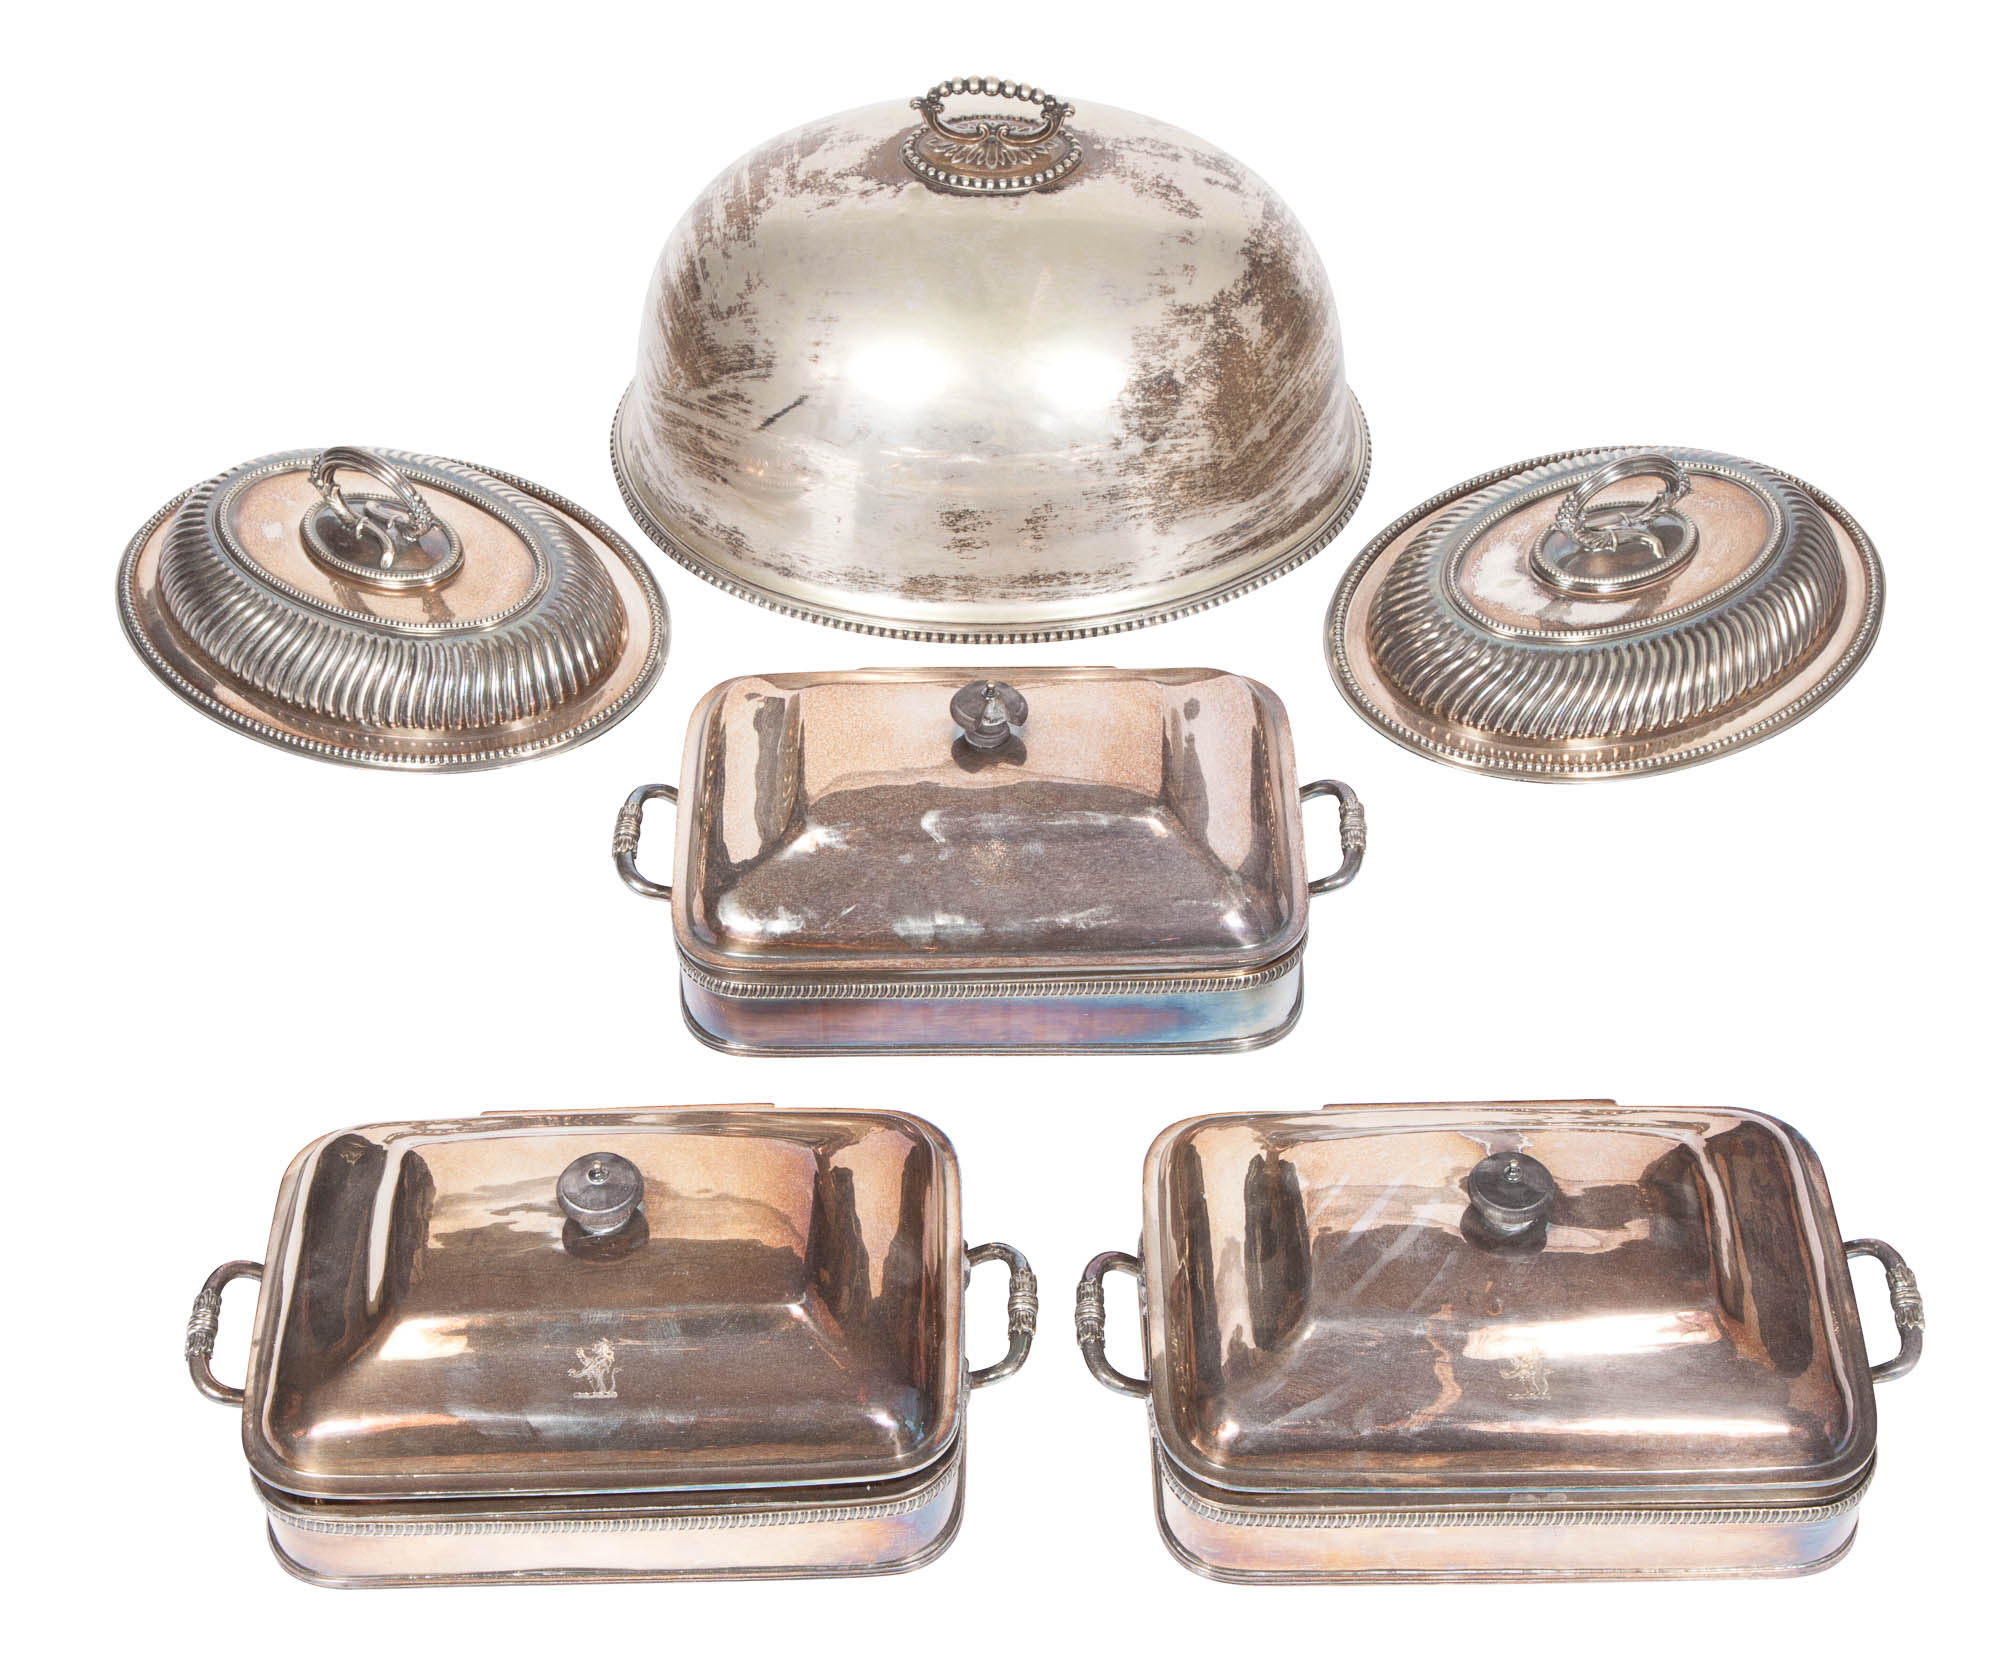 Lot image - Three Silver-Plated Warming Dishes; Together with a Pair of Silver-Plated Covered Oval Vegetable Dishes and a Silver-Plated Meat Cover Dome